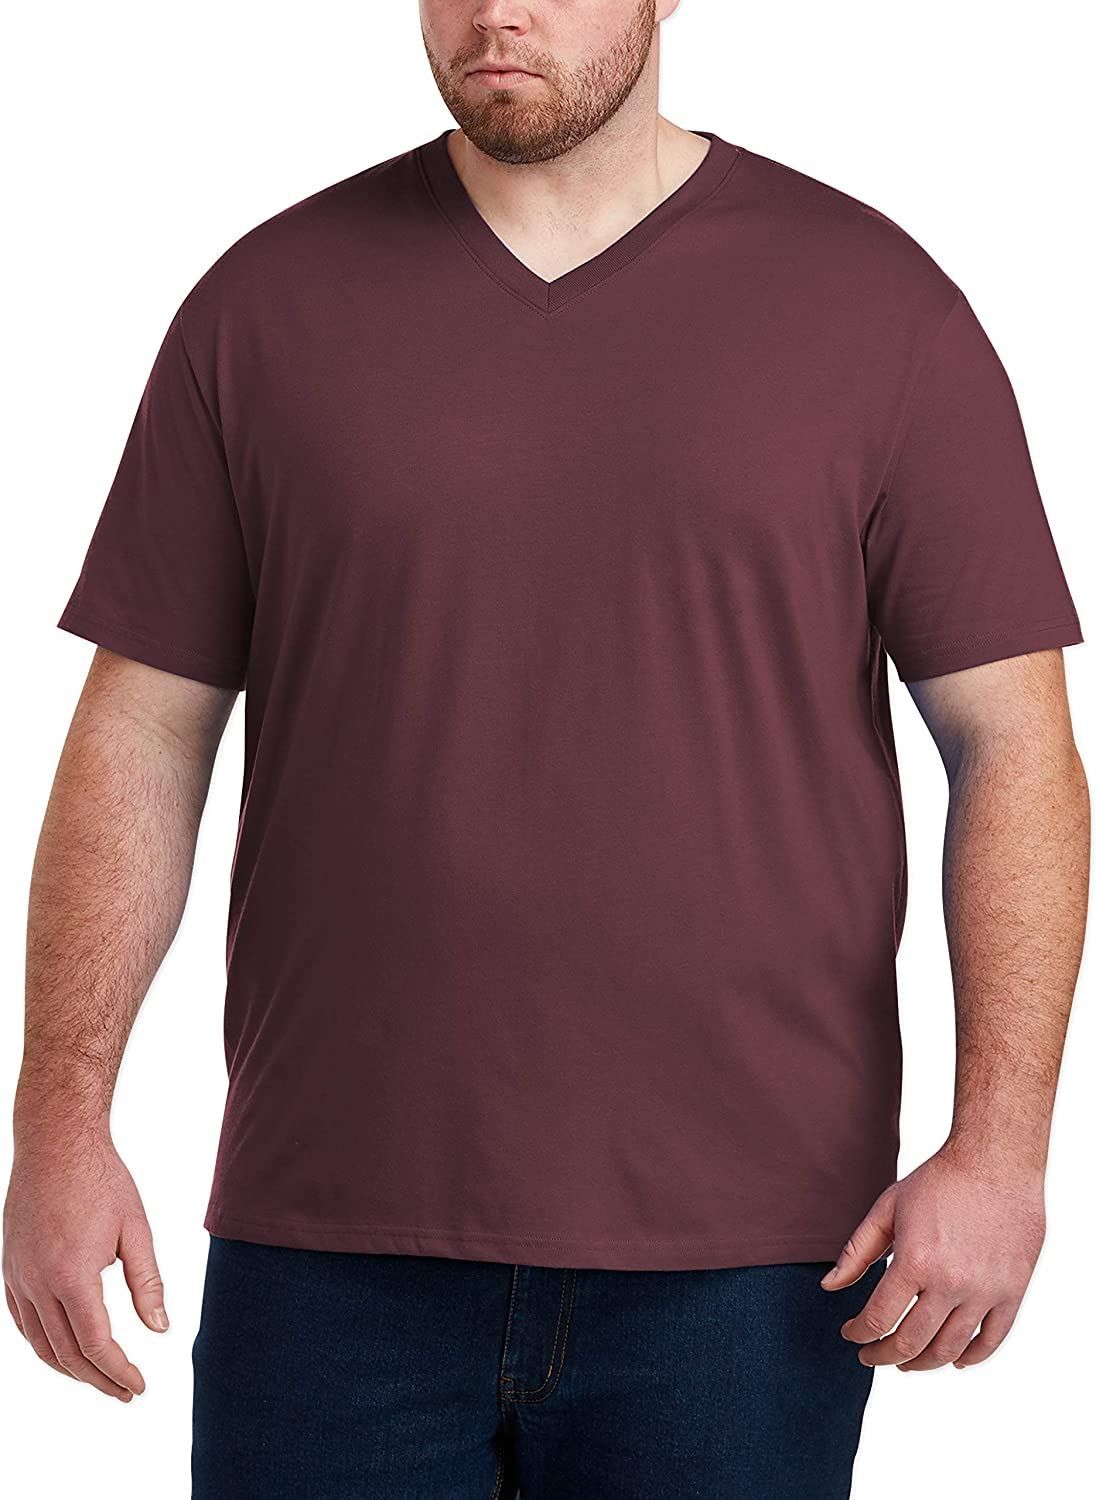 Essentials Mens Big /& Tall 2-Pack Short-Sleeve V-Neck T-Shirts fit by DXL